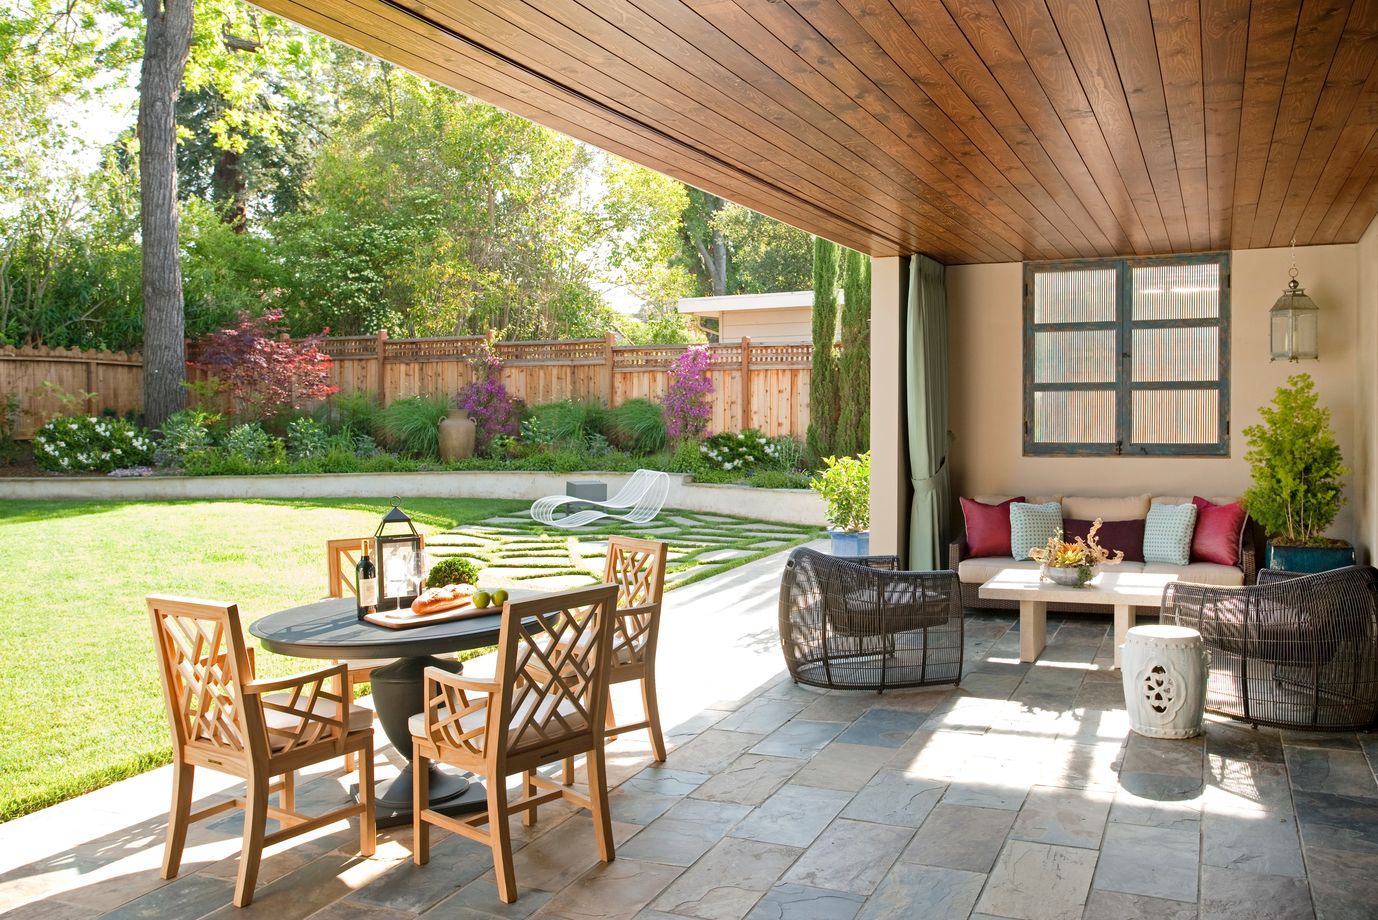 Outdoor living 8 ideas to get the most out of your space for Creating an outdoor living space